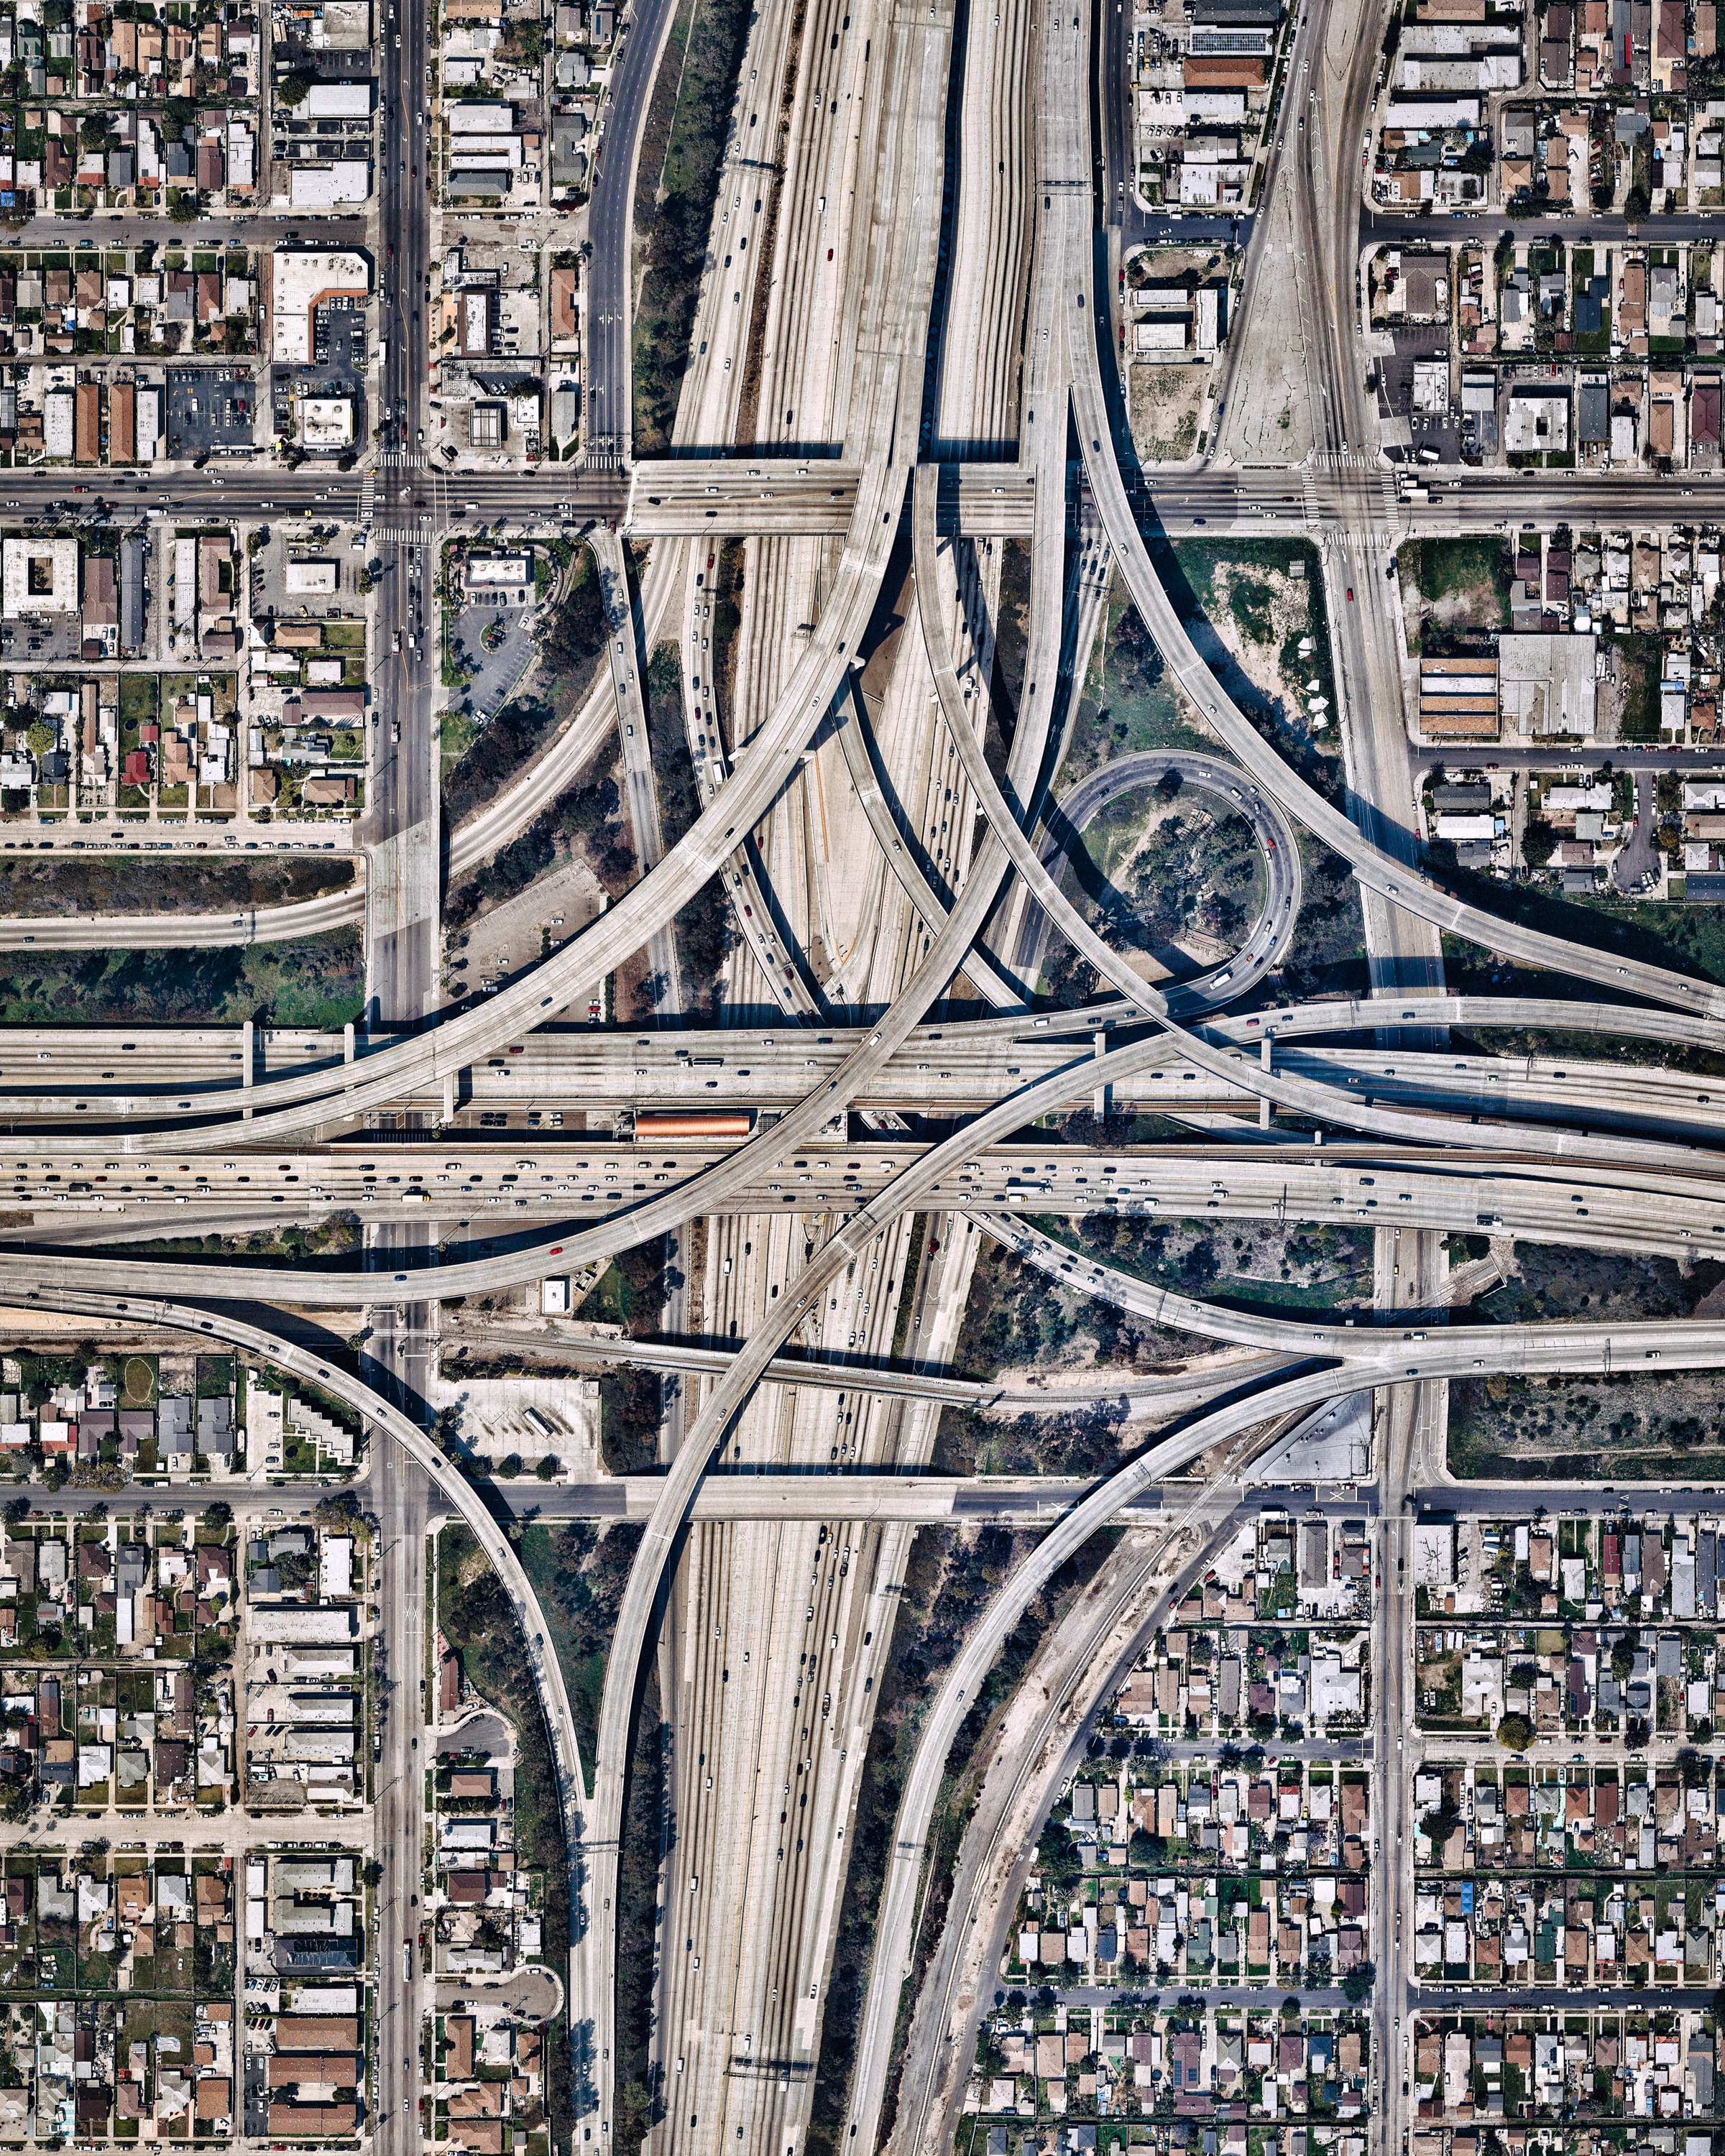 """The Judge Harry Pregerson Interchange is a 130-foot-tall (40 m) stack interchange near the Athens and Watts communities of Los Angeles, California. It is formed by the intersection of Interstate 105 (Glenn M. Anderson Freeway) and Interstate 110 (Harbor Freeway). For a full weekend in 2015, one of the interchange ramps was closed for filming the opening musical number of """"La La Land.""""  33°55'44.1""""N, 118°16'50.1""""W  Source imagery: Nearmap"""